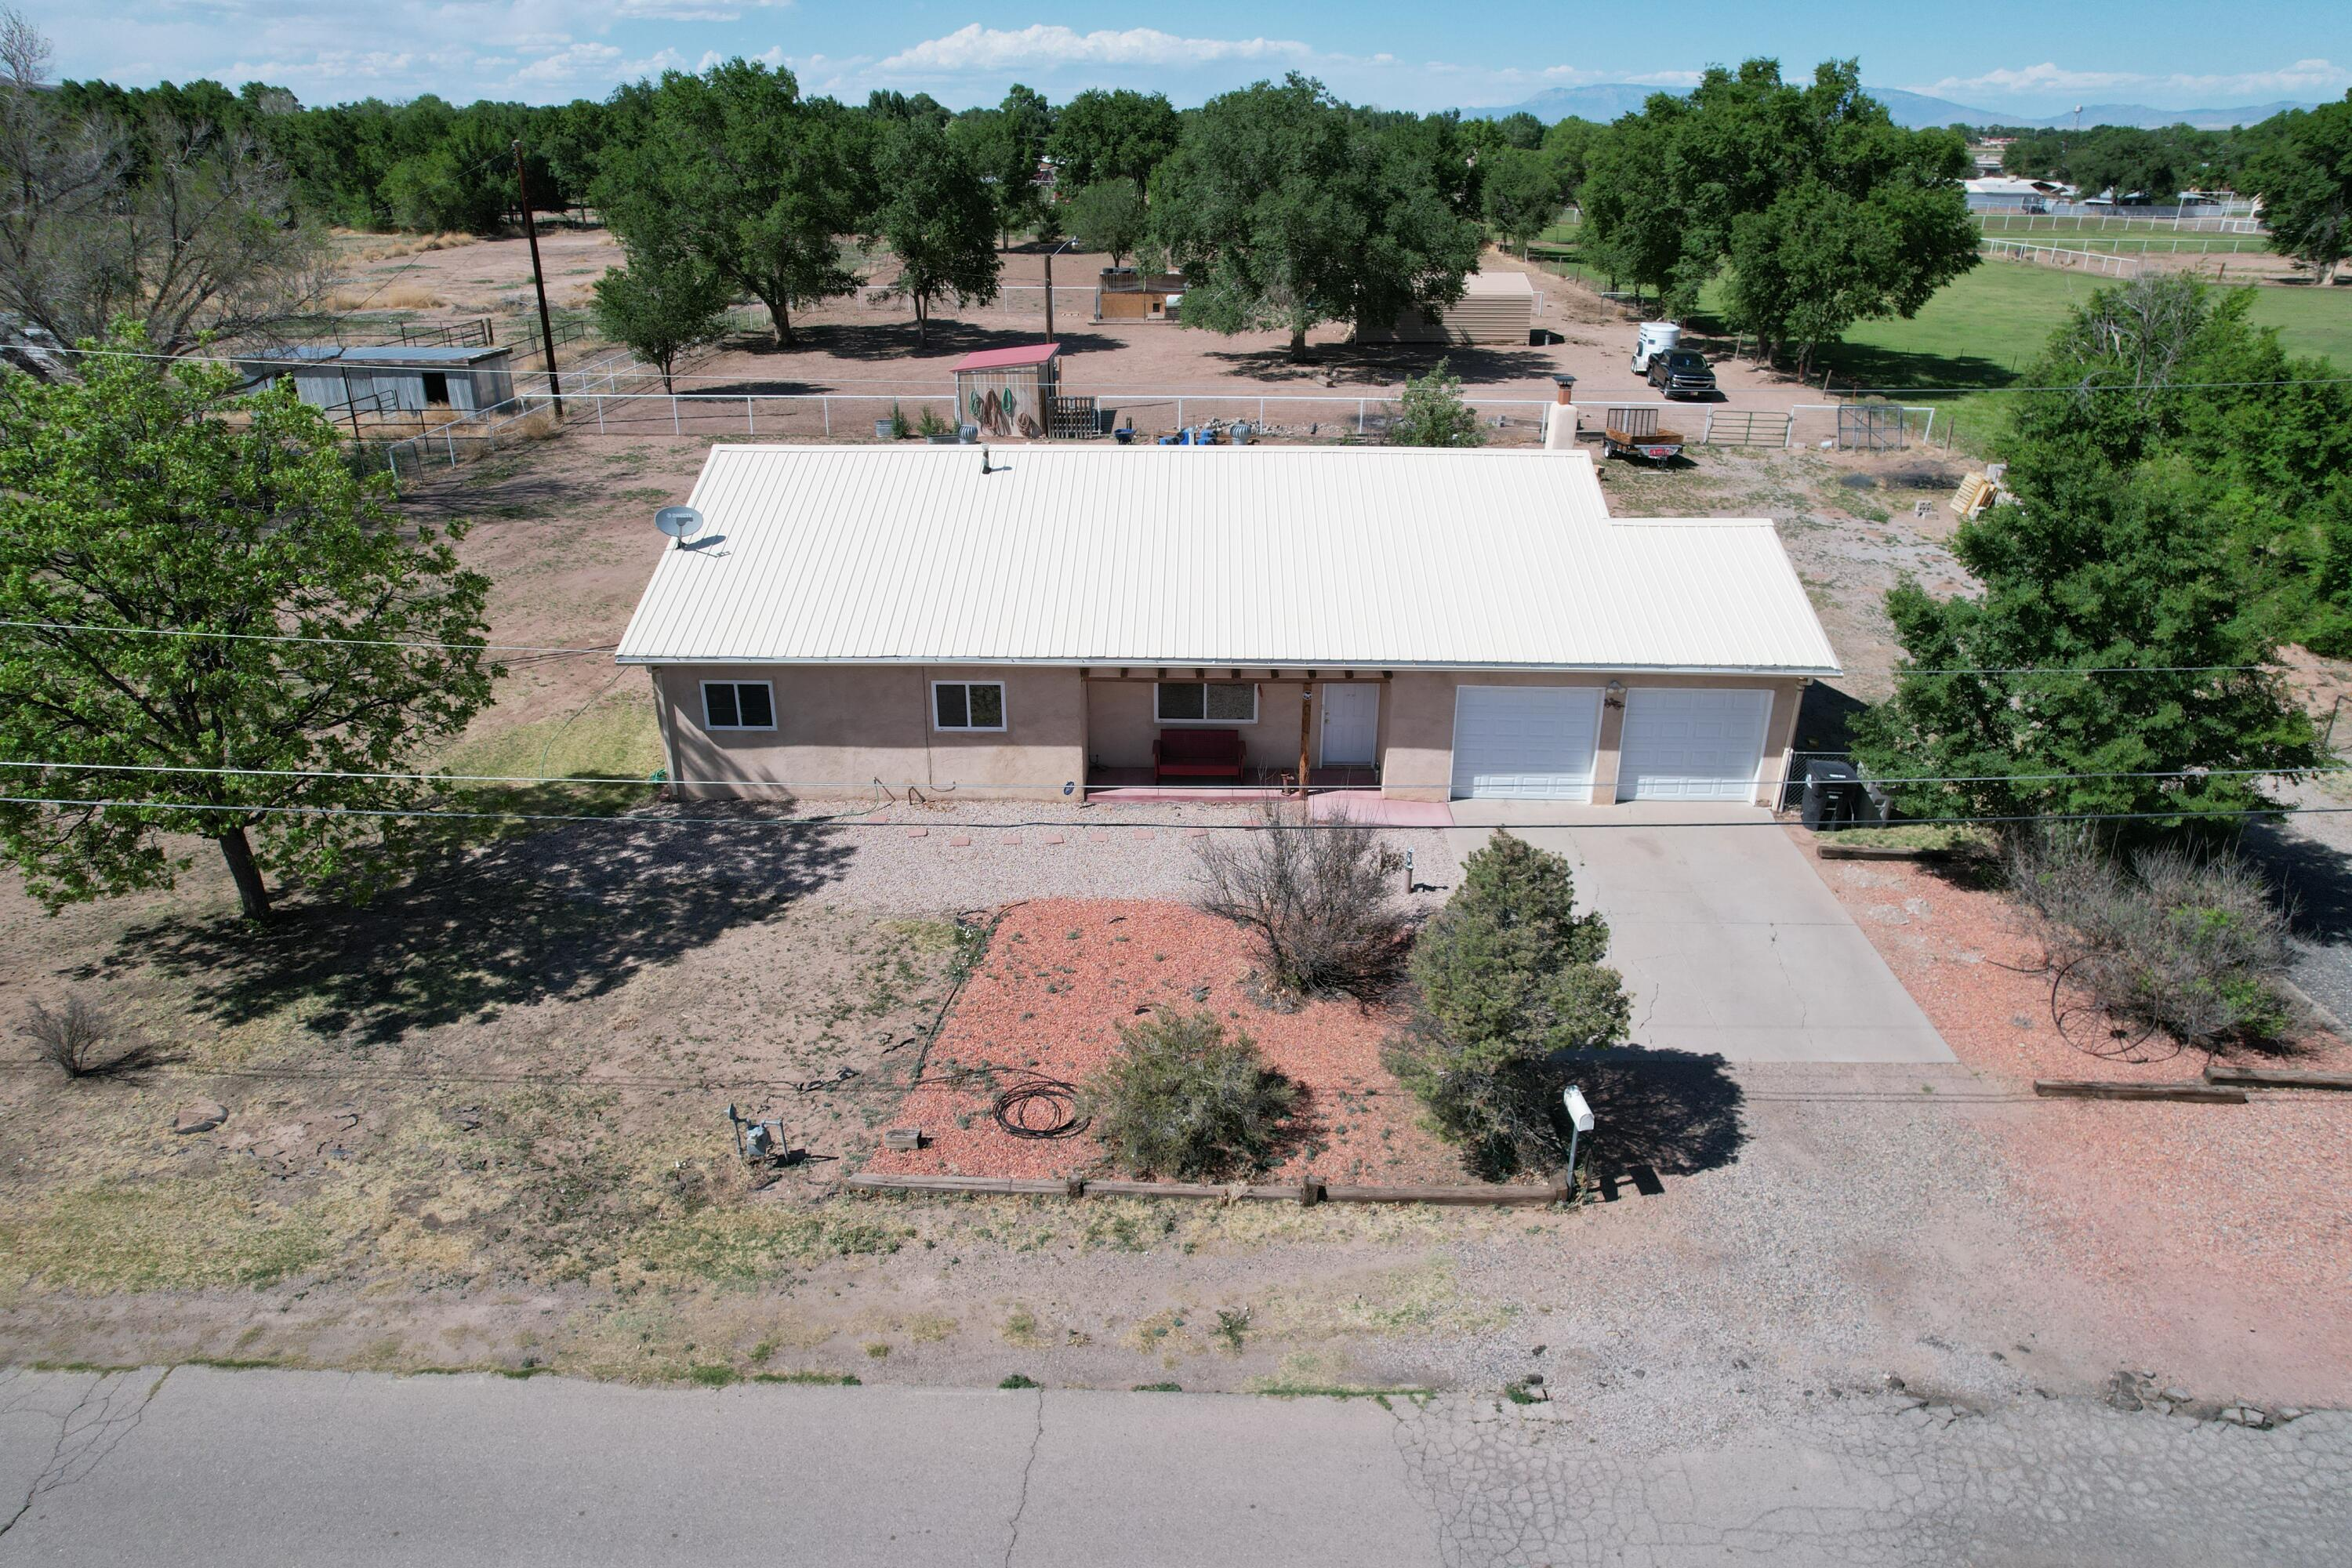 This 1800+ sq foot home with 3 bedrooms, 1.75 baths and an attached 2 car garage sits on 1.92 acres of country setting with fencing dividing property into 3 sections. Comes with a metal structure used as a horse barn, chicken coup which houses 16 currently and a storage. Plenty of room for the animals or family gatherings or both. The home features  refrigerated air to keep cool in the summer months as well as a fireplace in the living area to heat up during the winter months. The kitchen is open for easy entertaining. The master bedroom boasts an up dated bathroom with a huge walk-in closet. Pride of ownership really shows on this home.